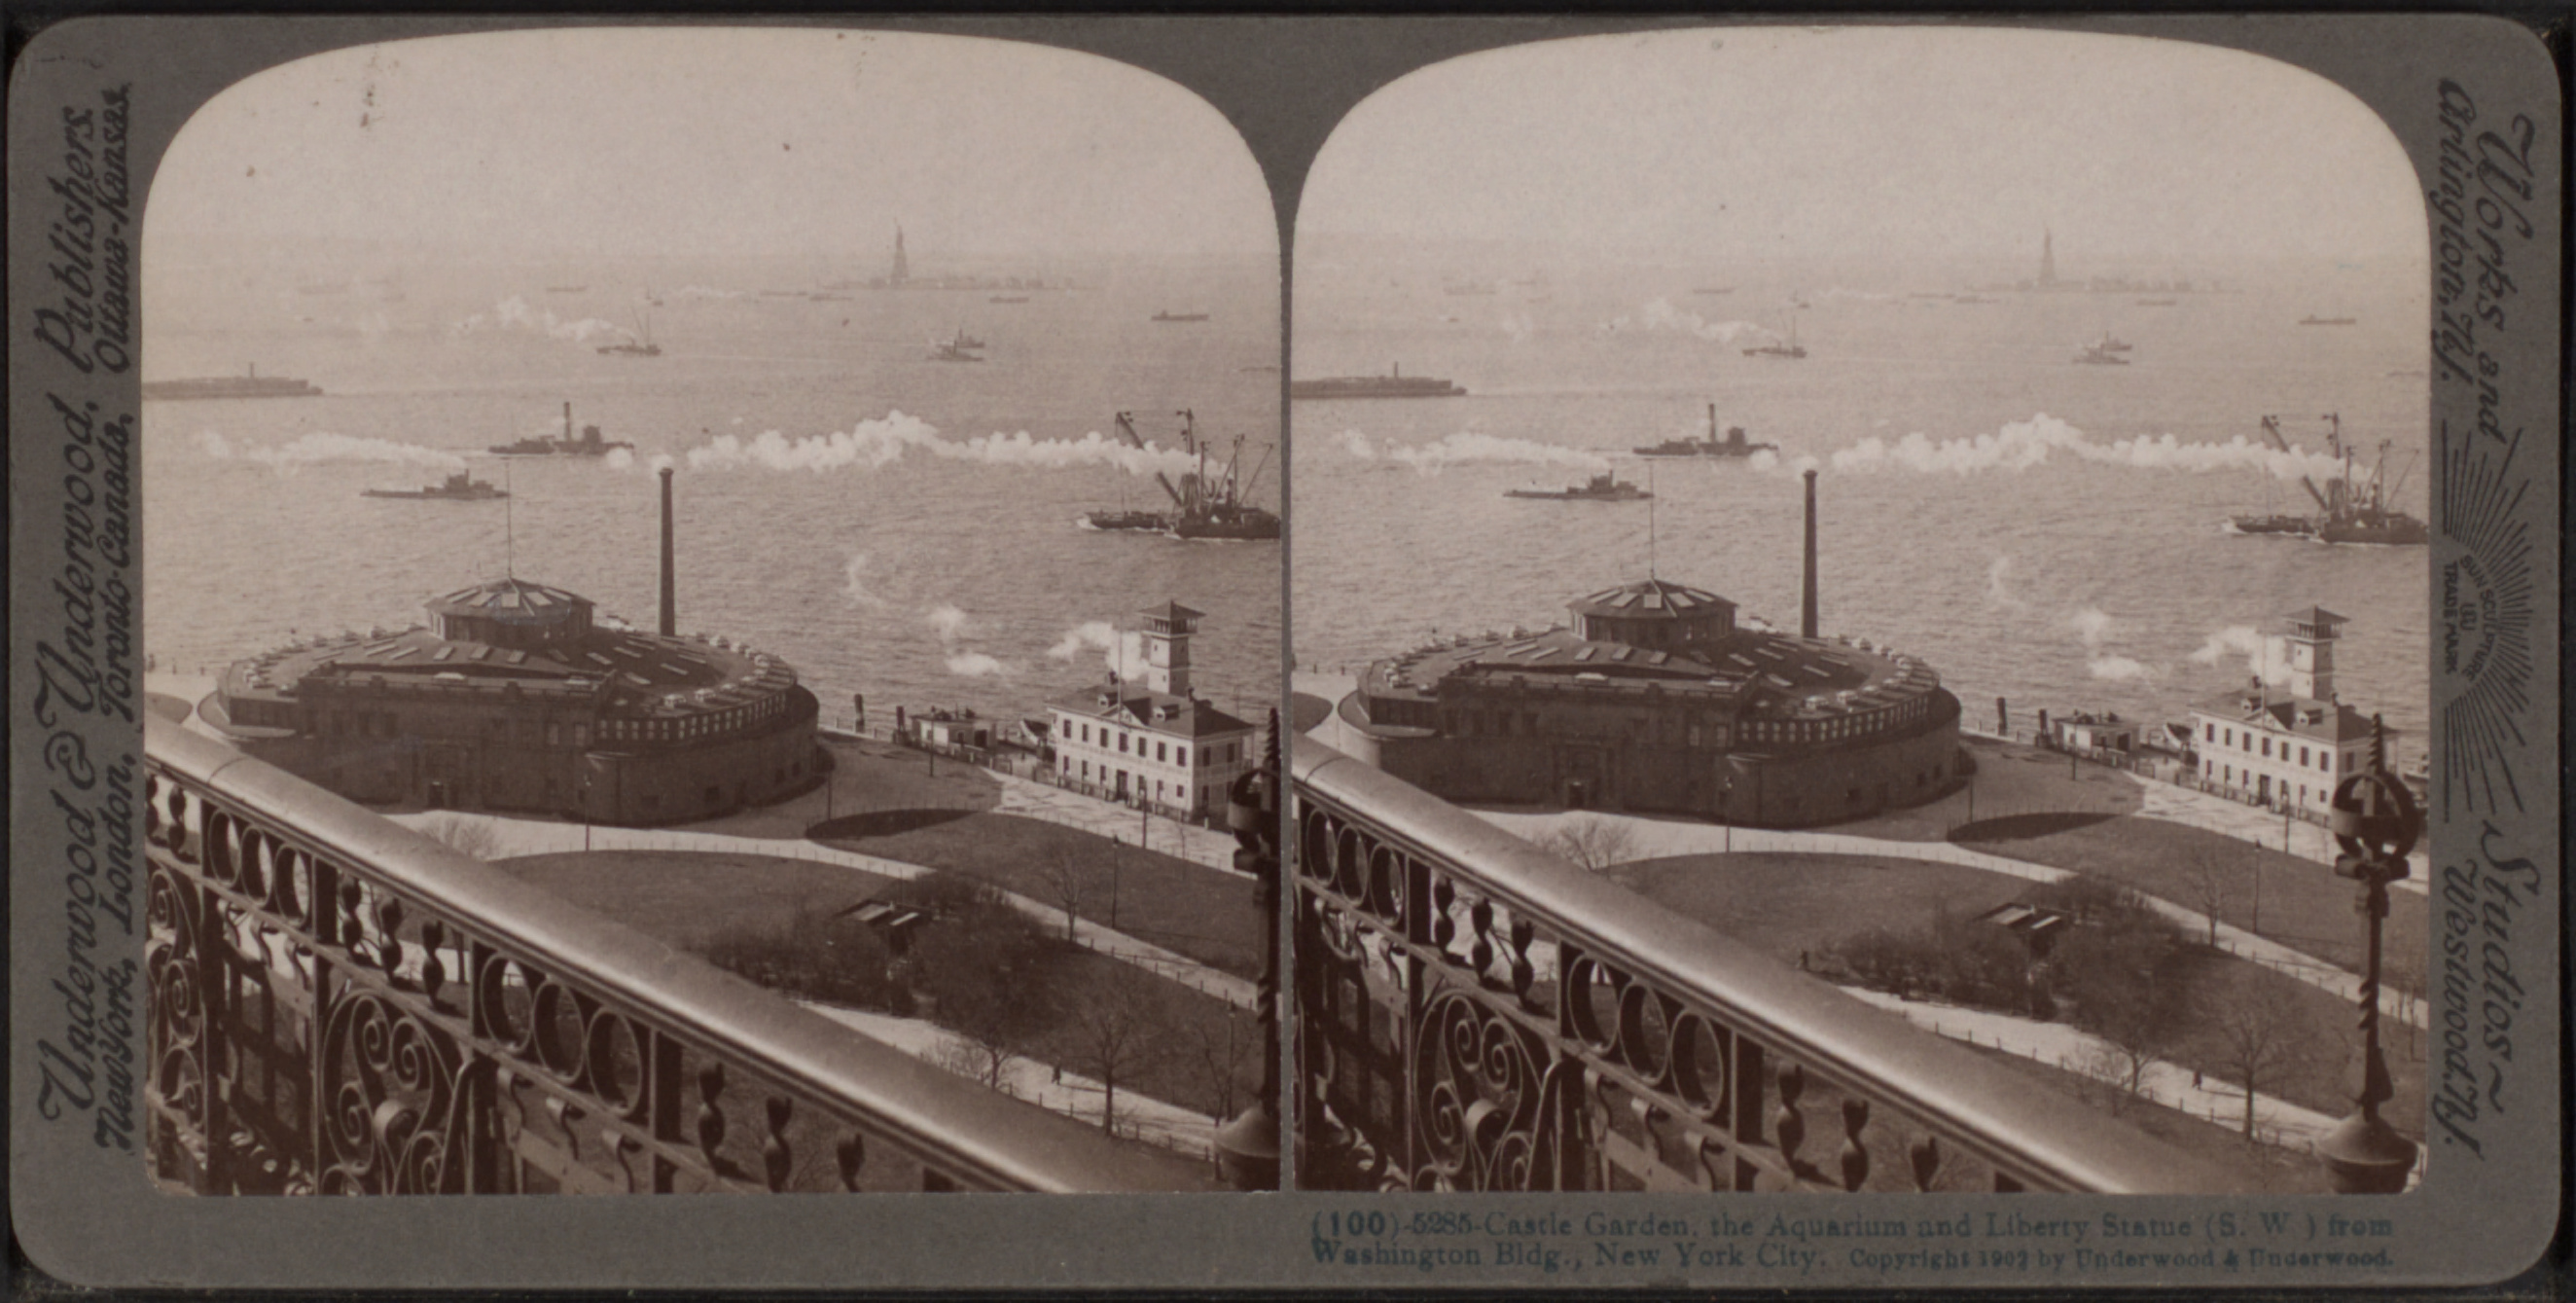 Castle_Garden%2C_the_Aquarium_and_Liberty_Statue_from_Washington_Building%2C_New_York_City%2C_from_Robert_N._Dennis_collection_of_stereoscopic_views Frais De Aquarium original